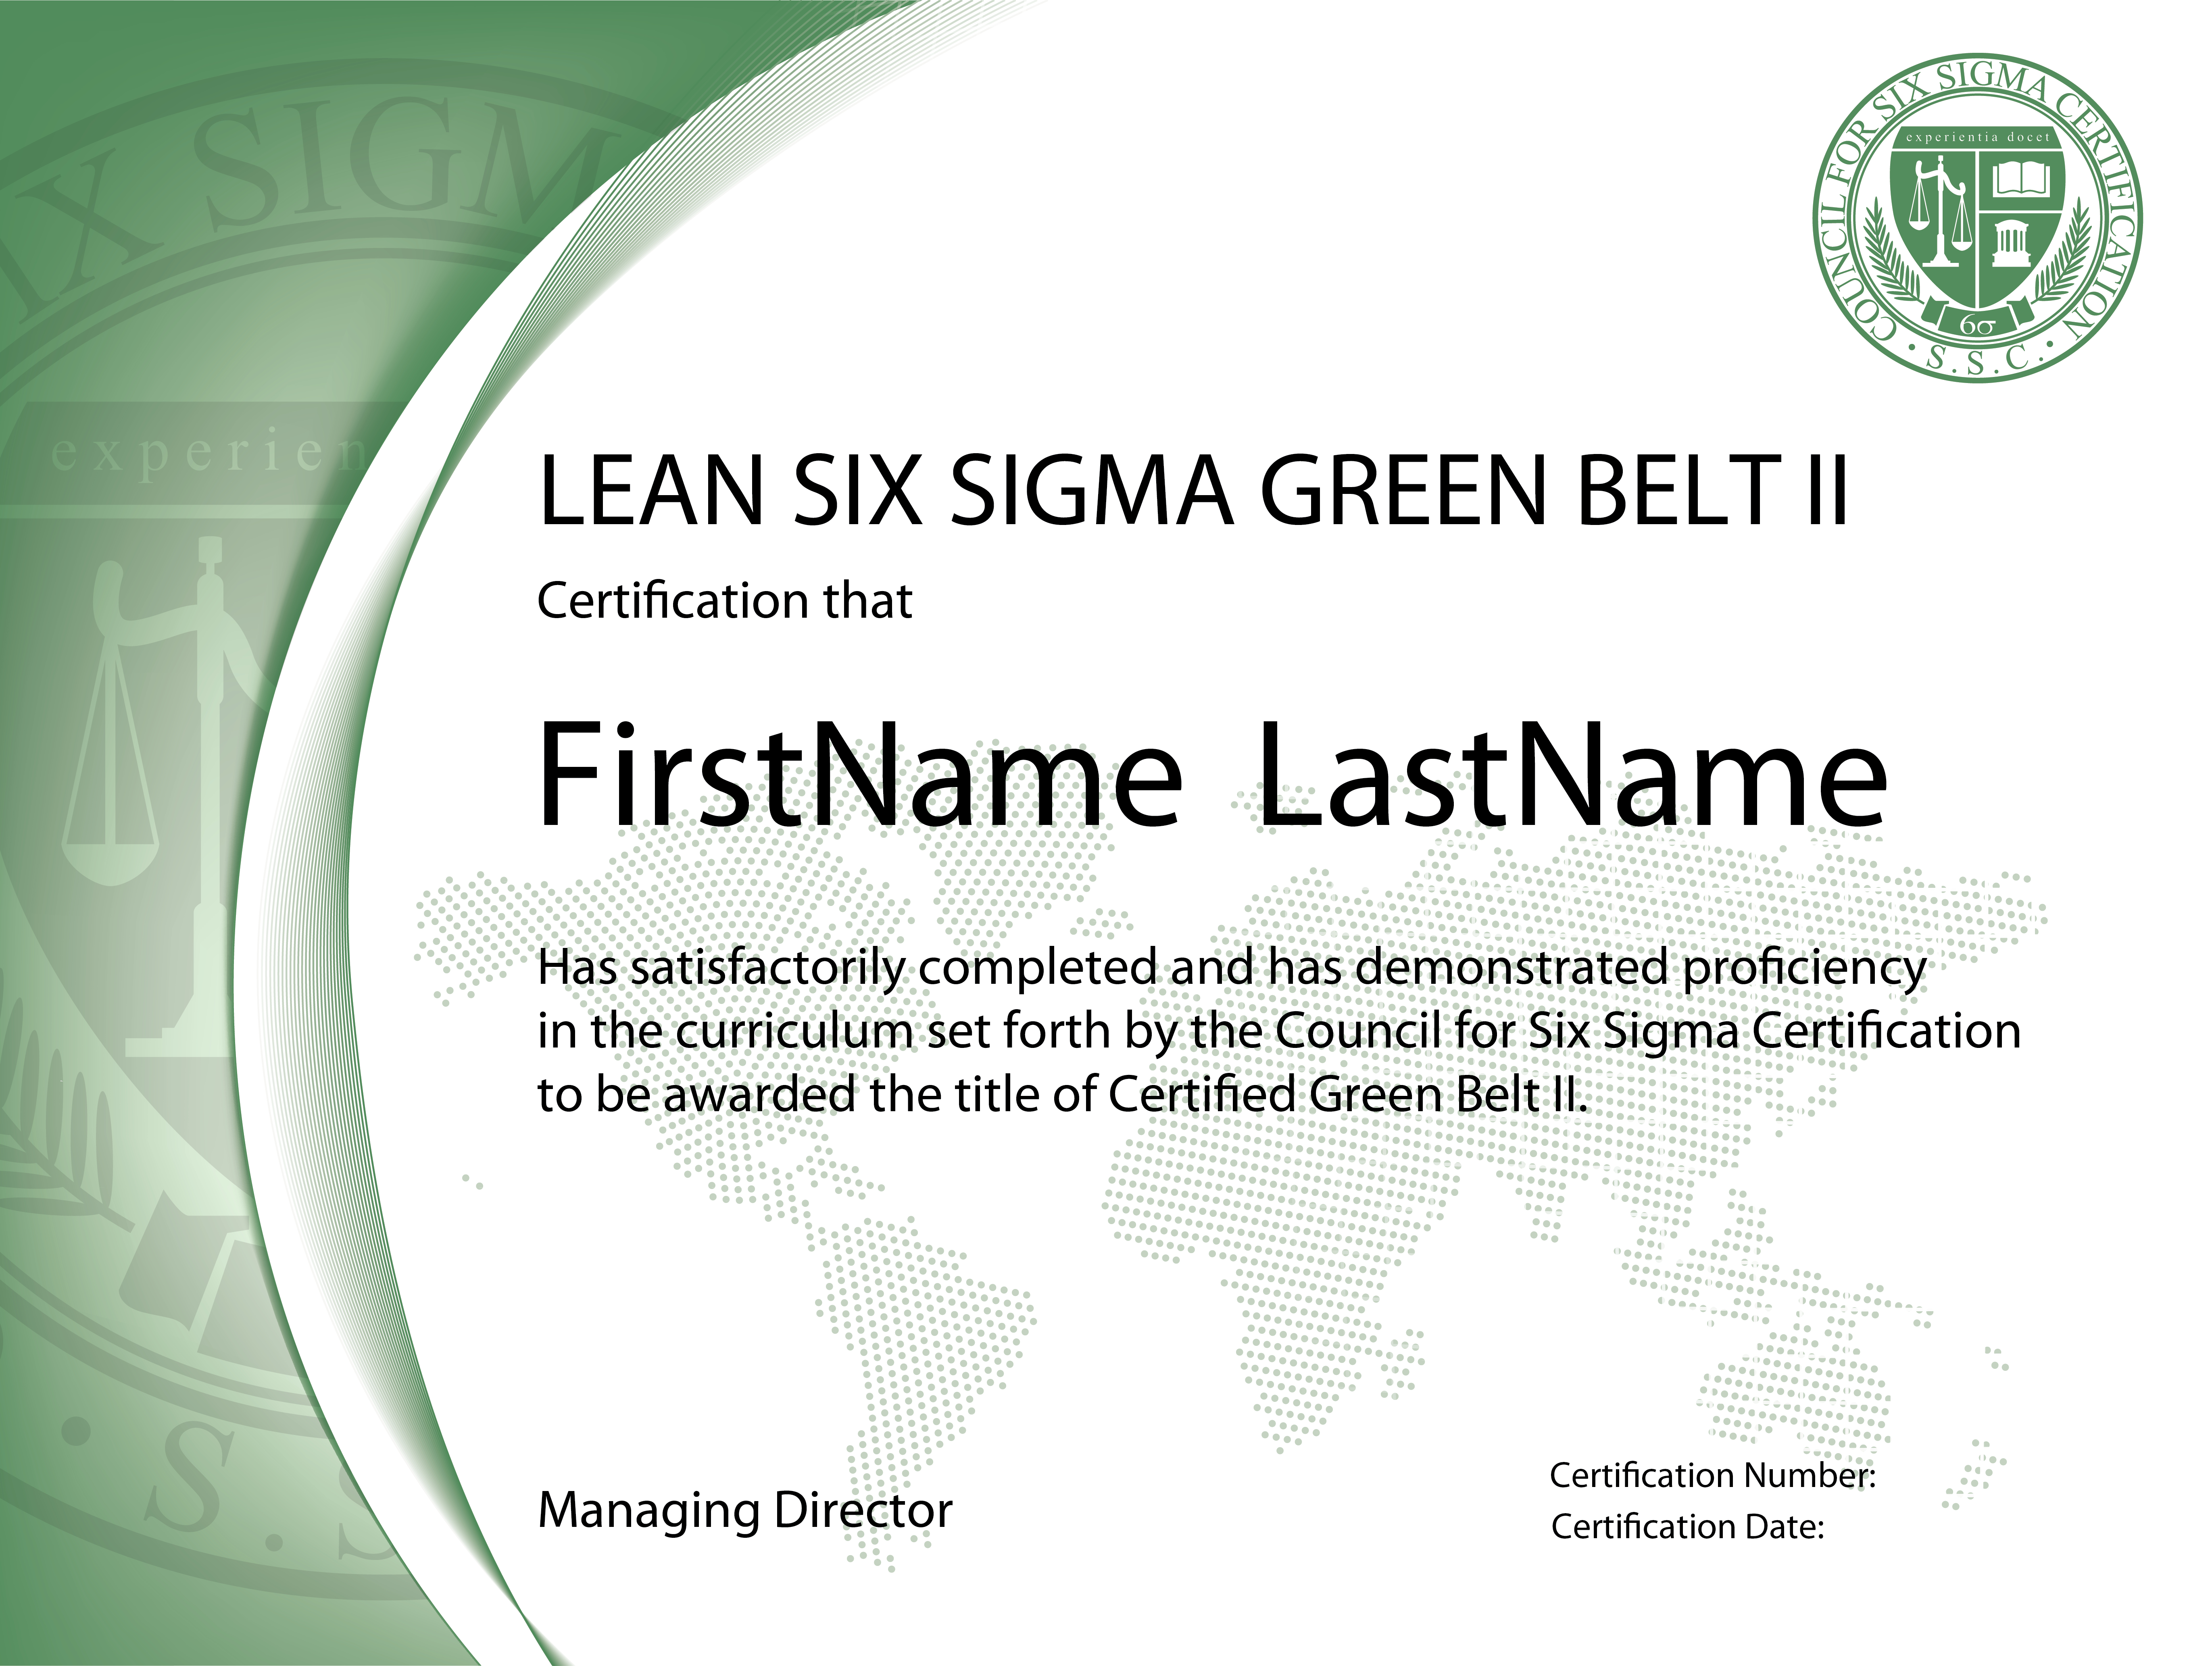 Lean Six Sigma Green Belt Certification  Level Ii  The Council For Throughout Green Belt Certificate Template